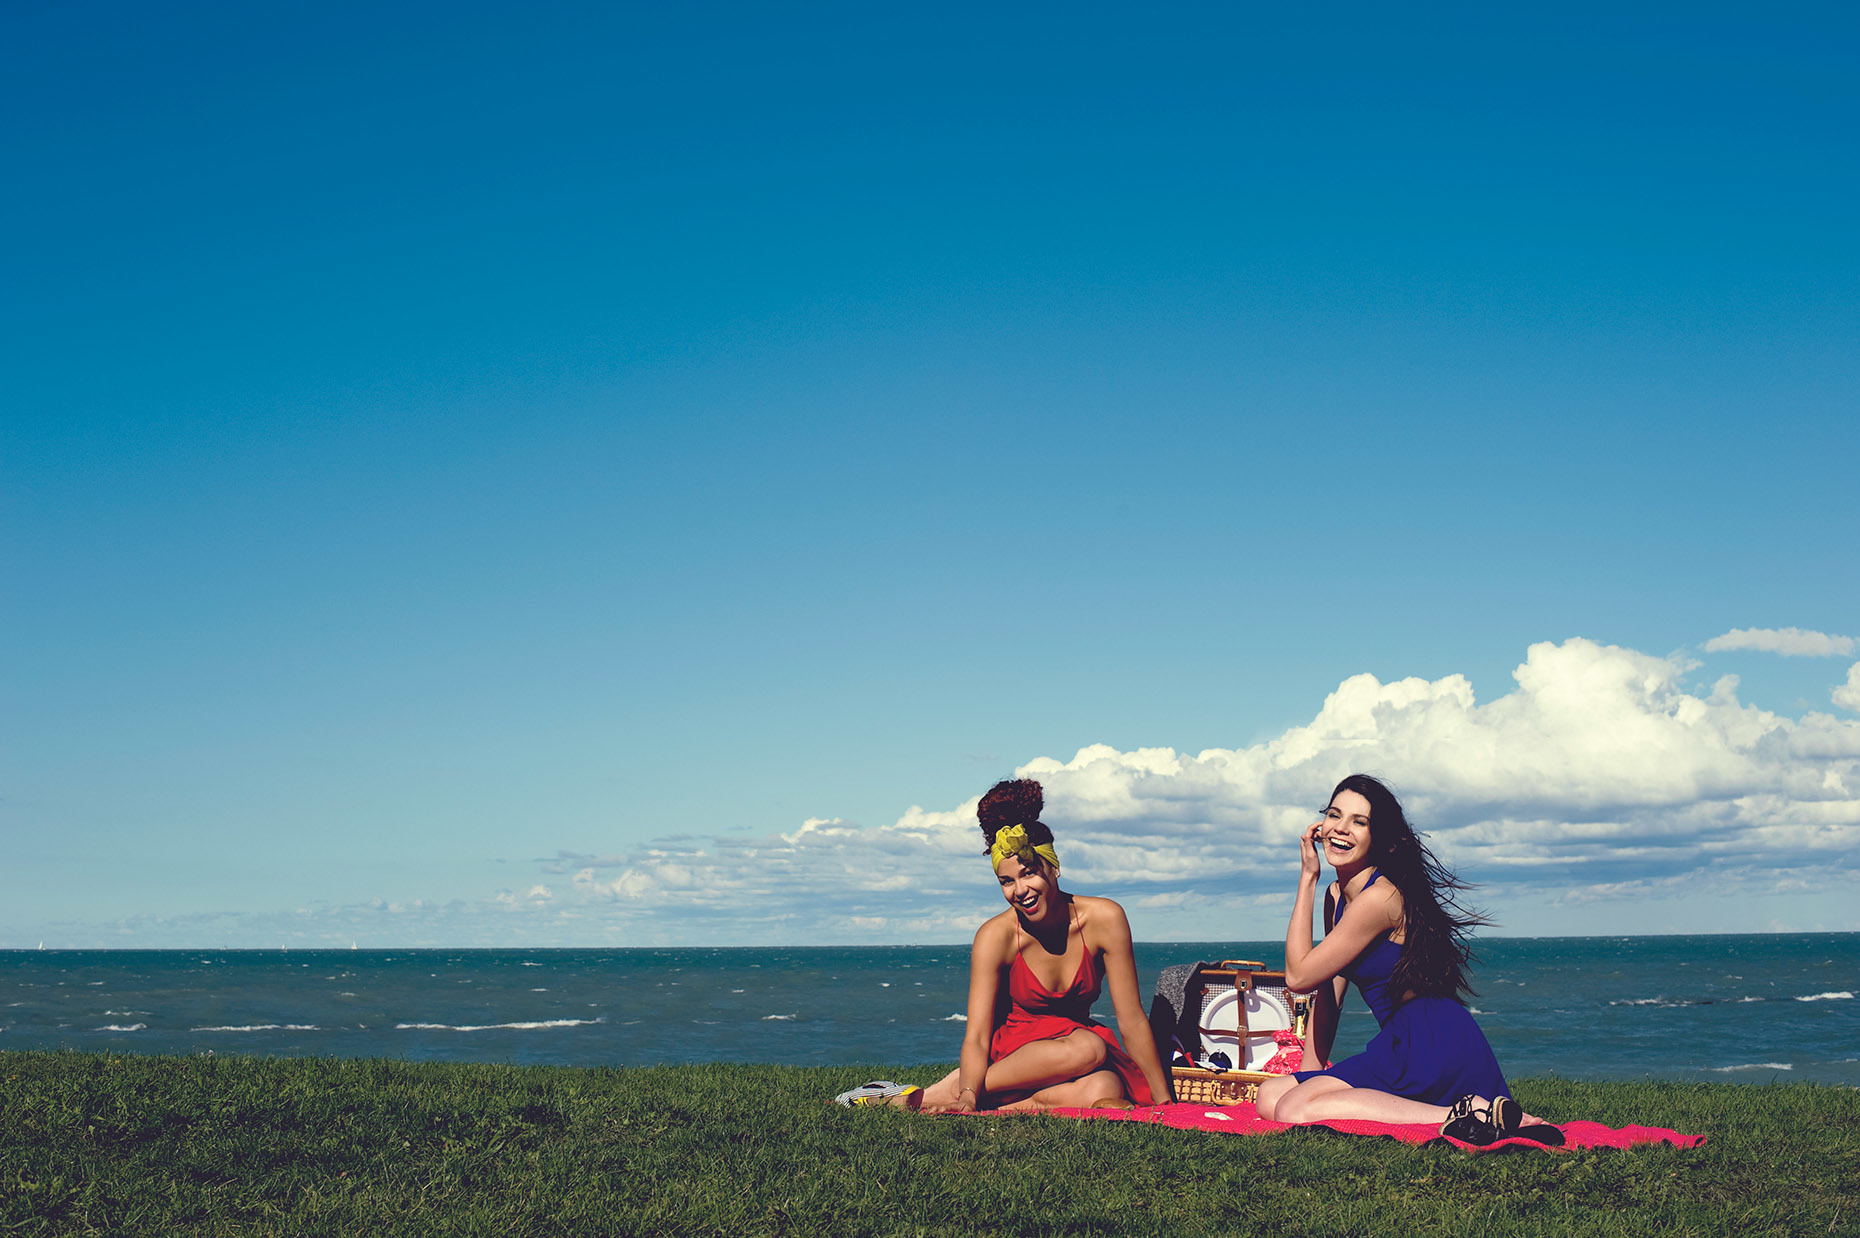 Picnic-on-the-Beach_Girls-Having-Fun_Dresses-Anna-Hovet_Lifestyle-Fashion_RHanelPhotography